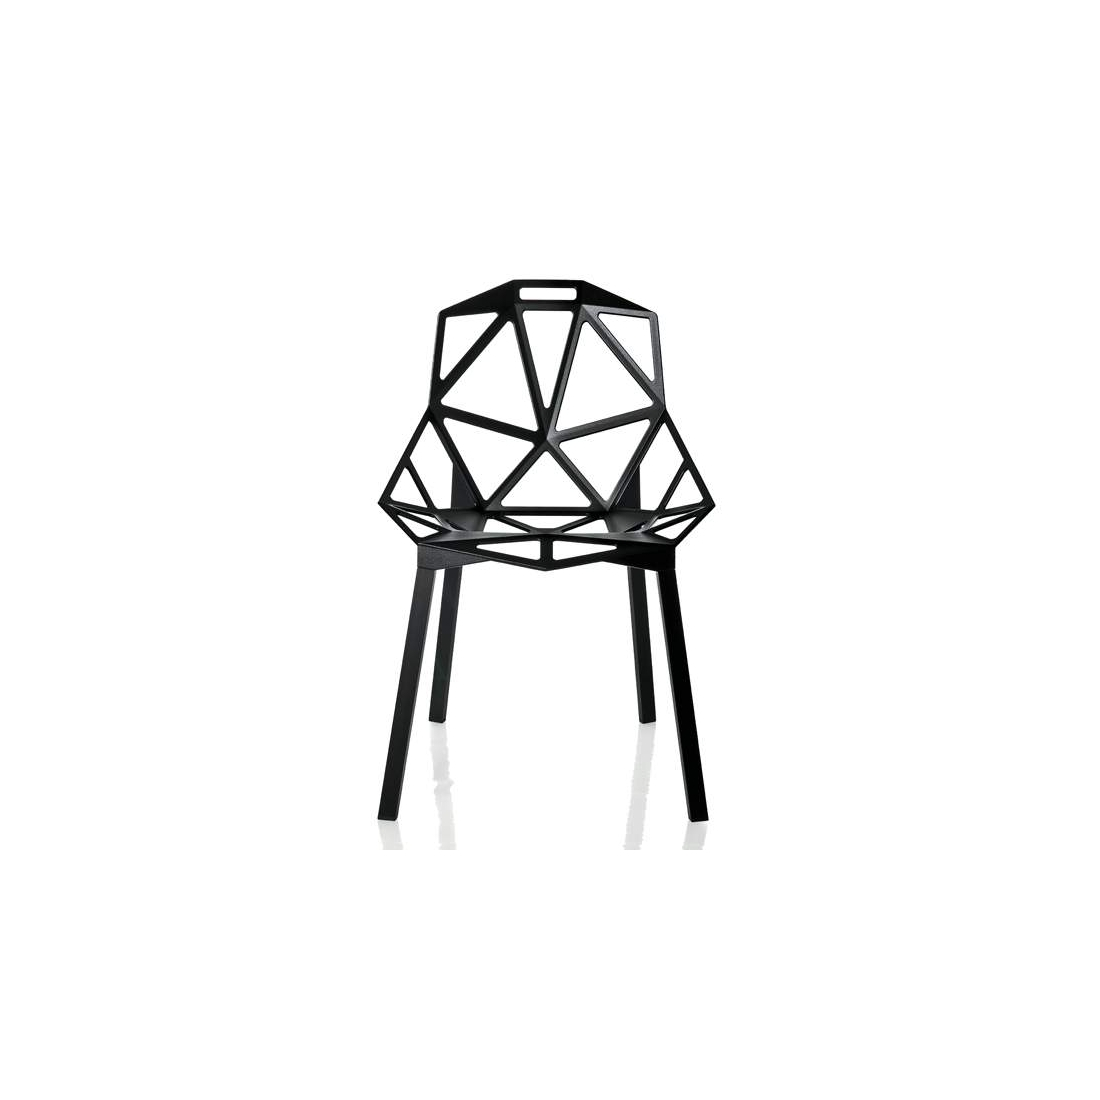 Chair One de Konstantin Grcic